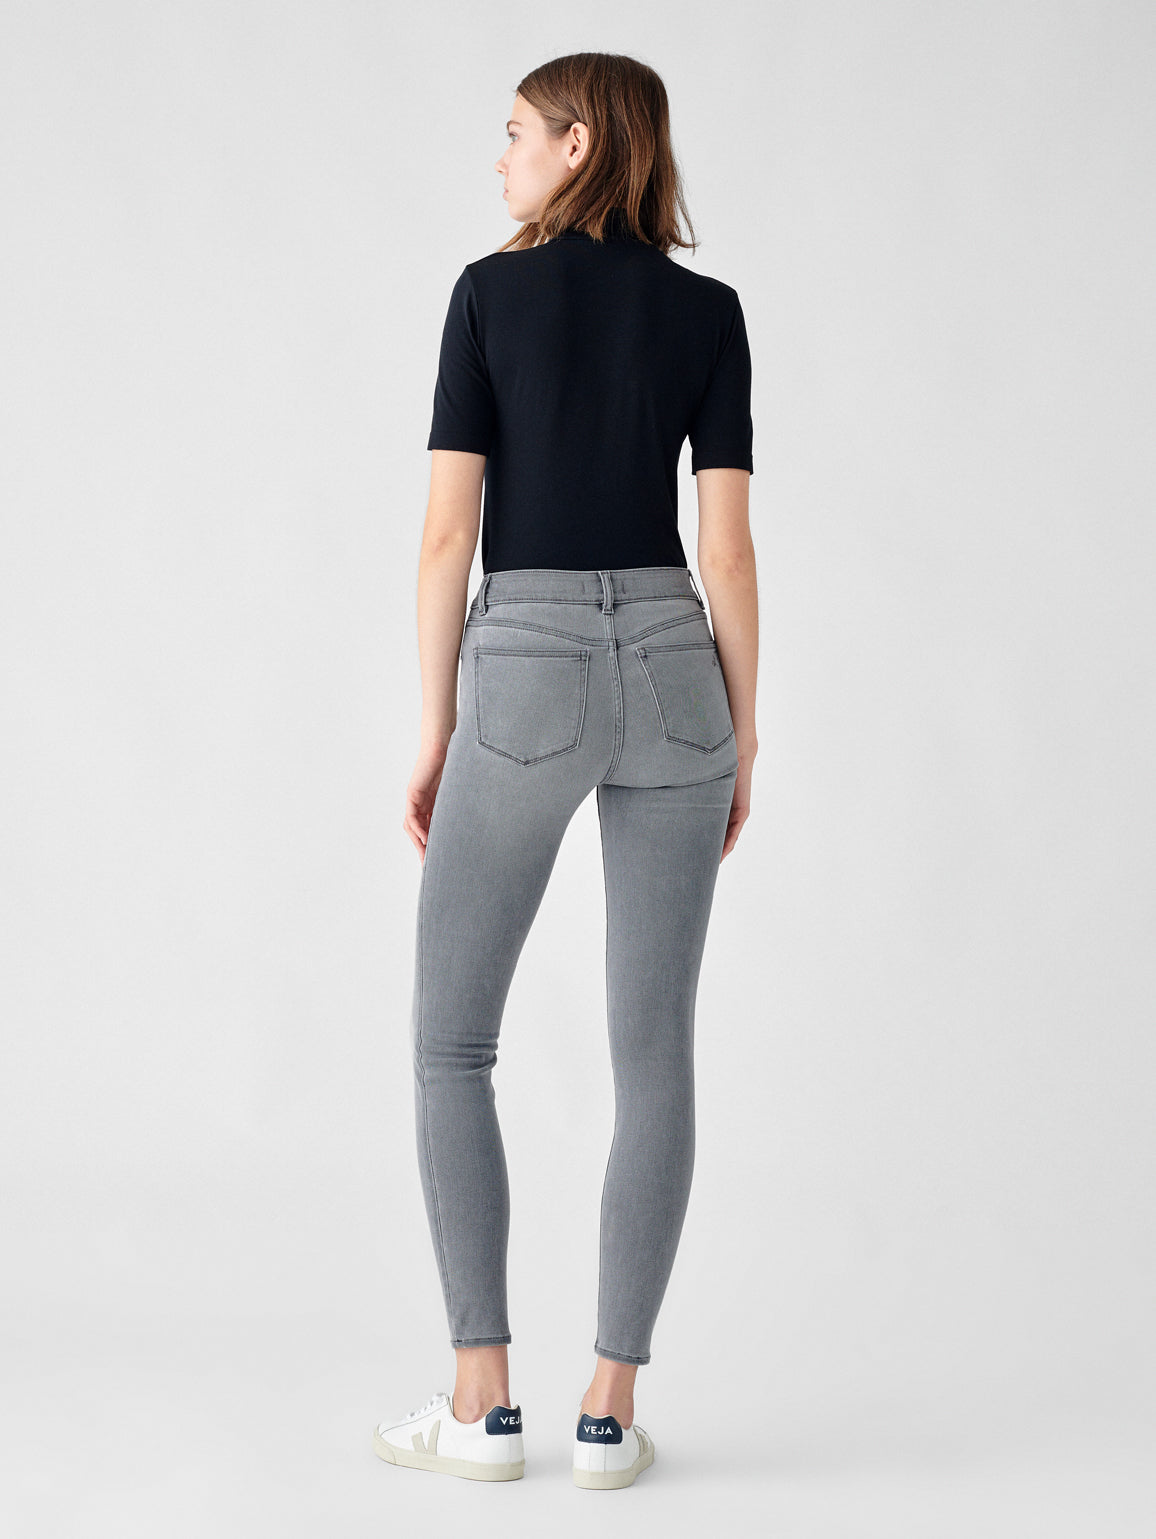 Florence Skinny Mid Rise Instasculpt 30"